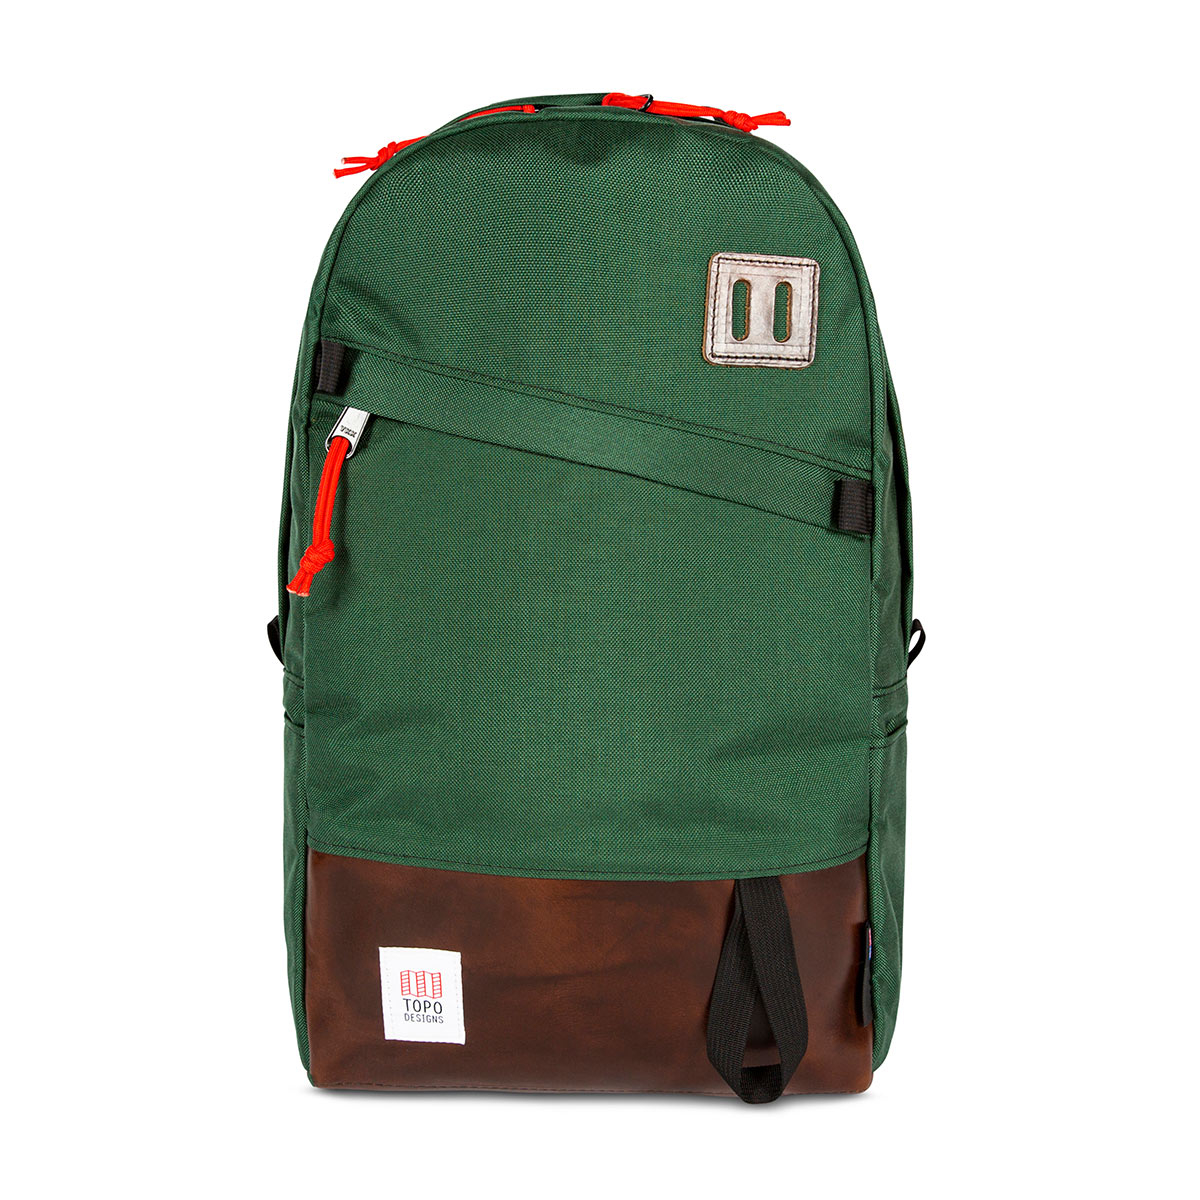 Topo Designs Daypack Forest/Brown Leather, ideale reisgenoot, schoolmaatje of pakezel